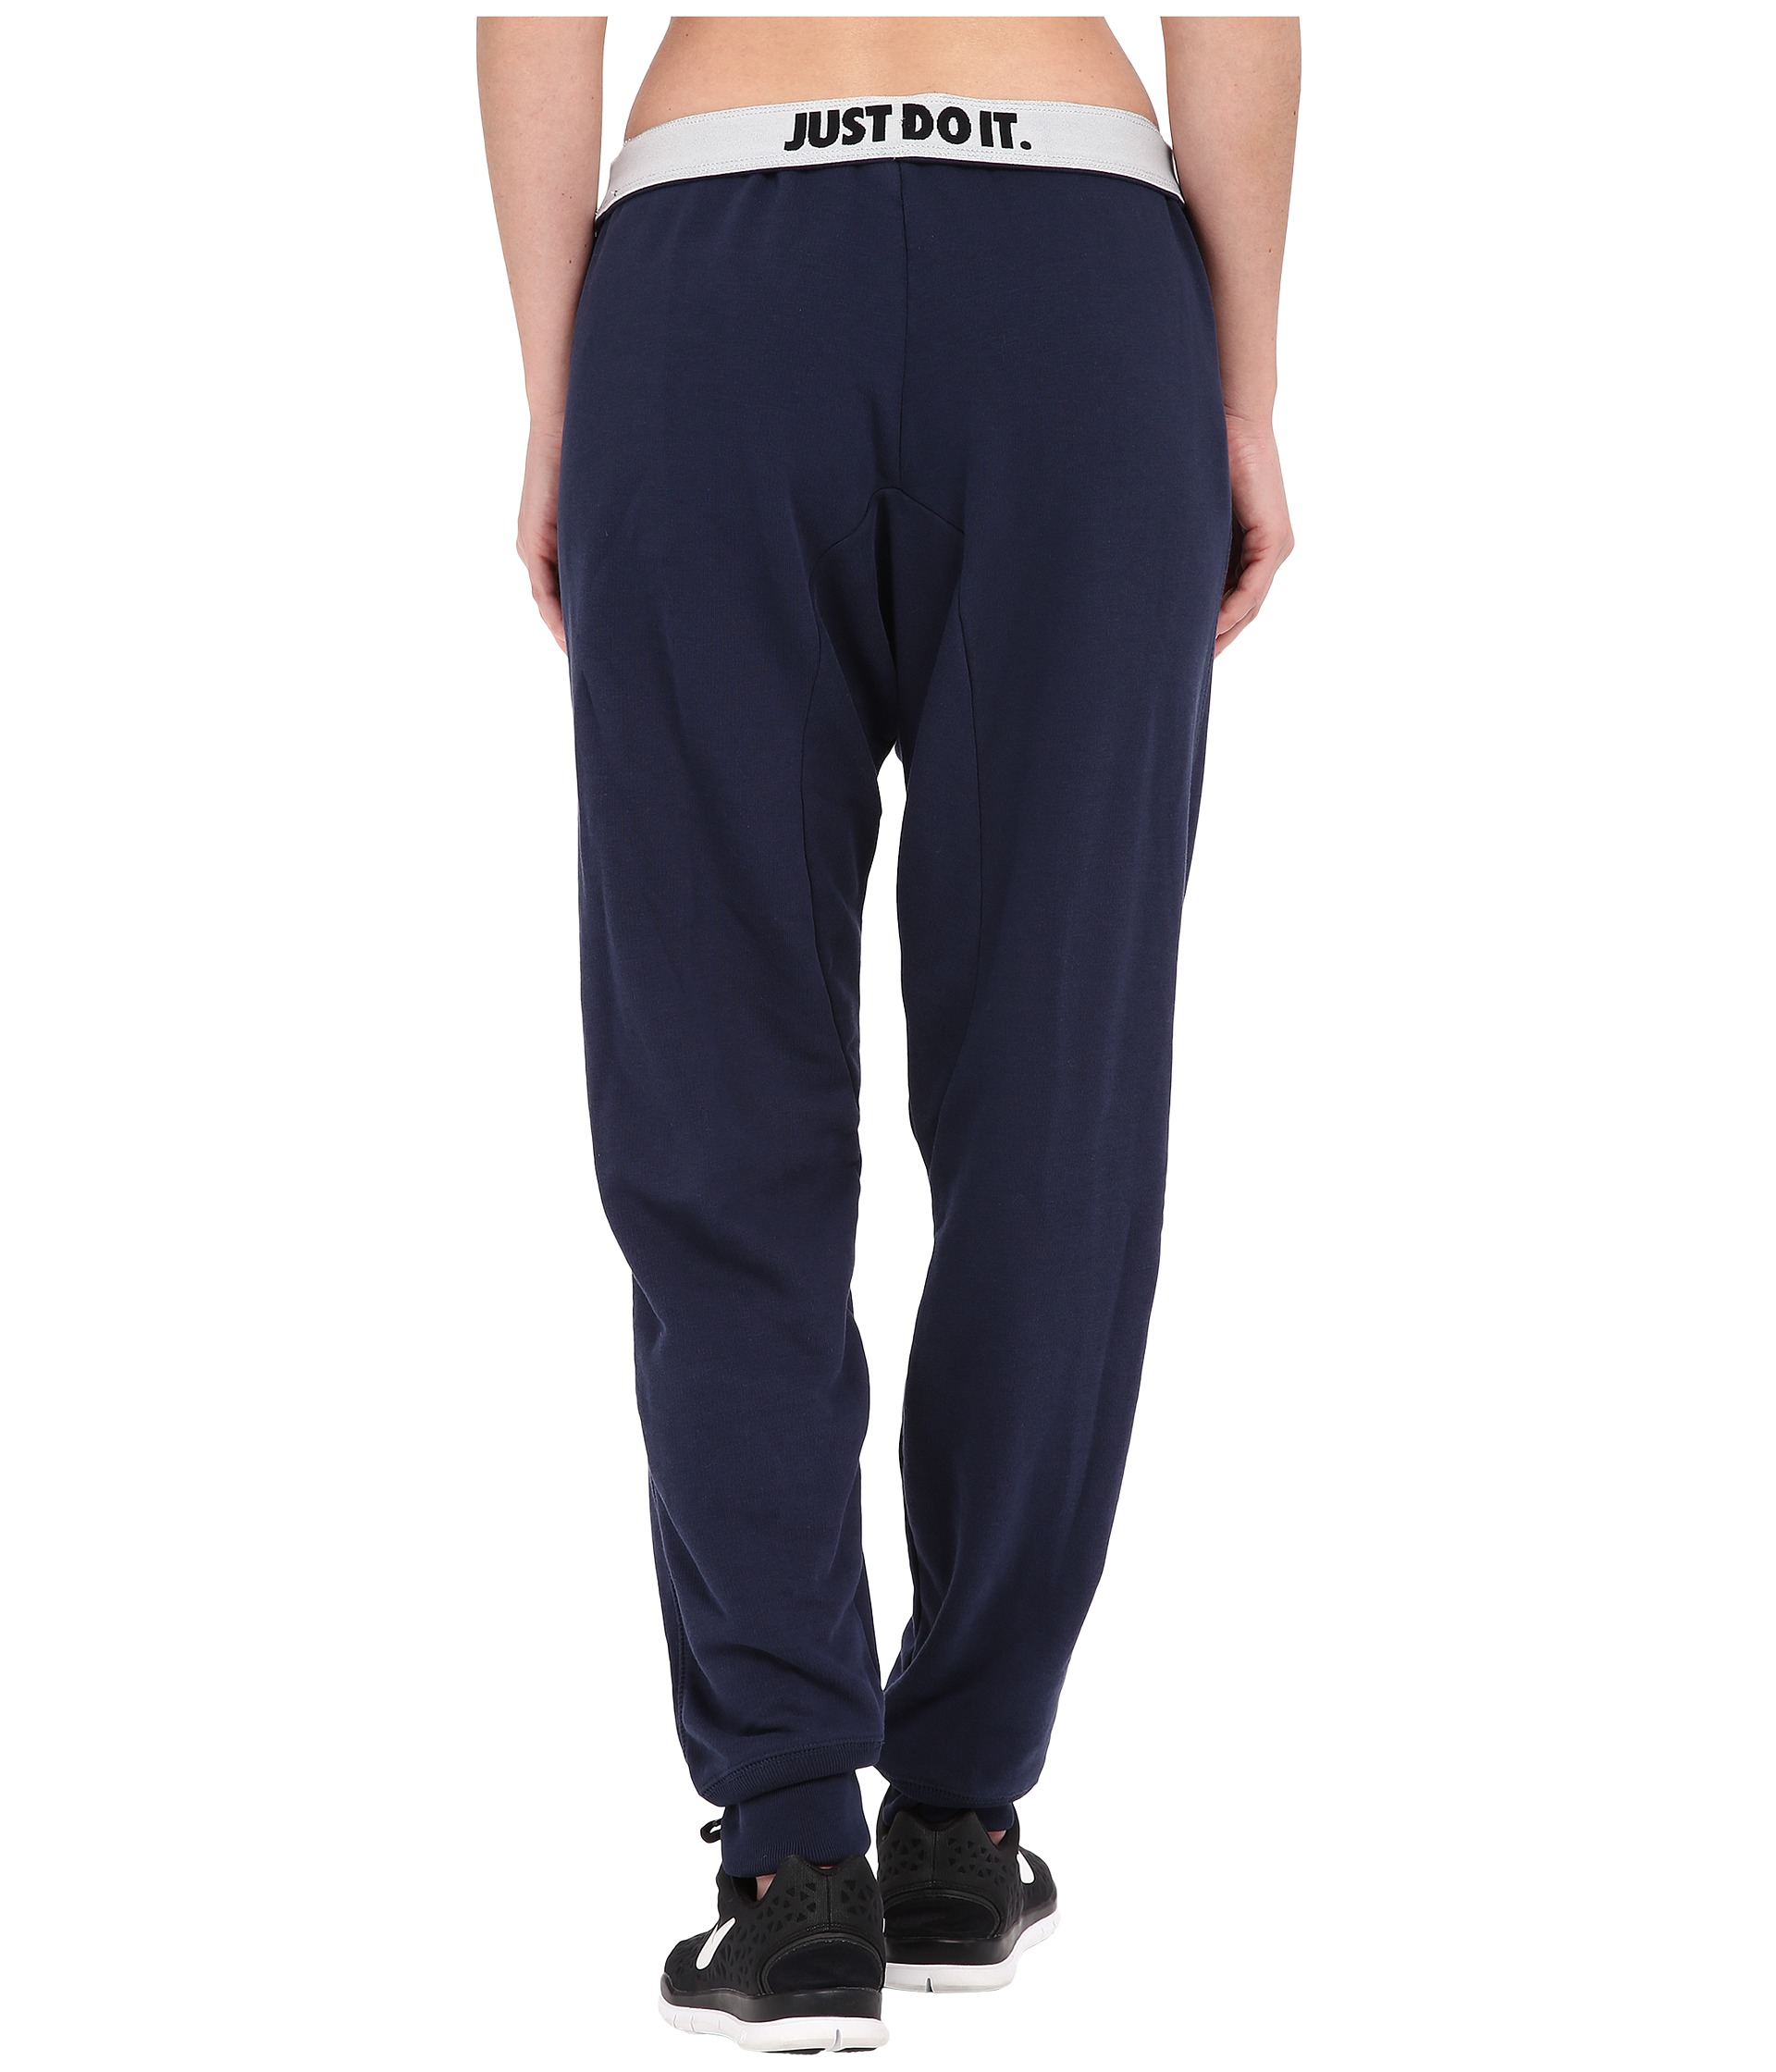 Beautiful Rally Joggers Rally Pants Joggers Joggers Sweatpants Nike Jogger Pants